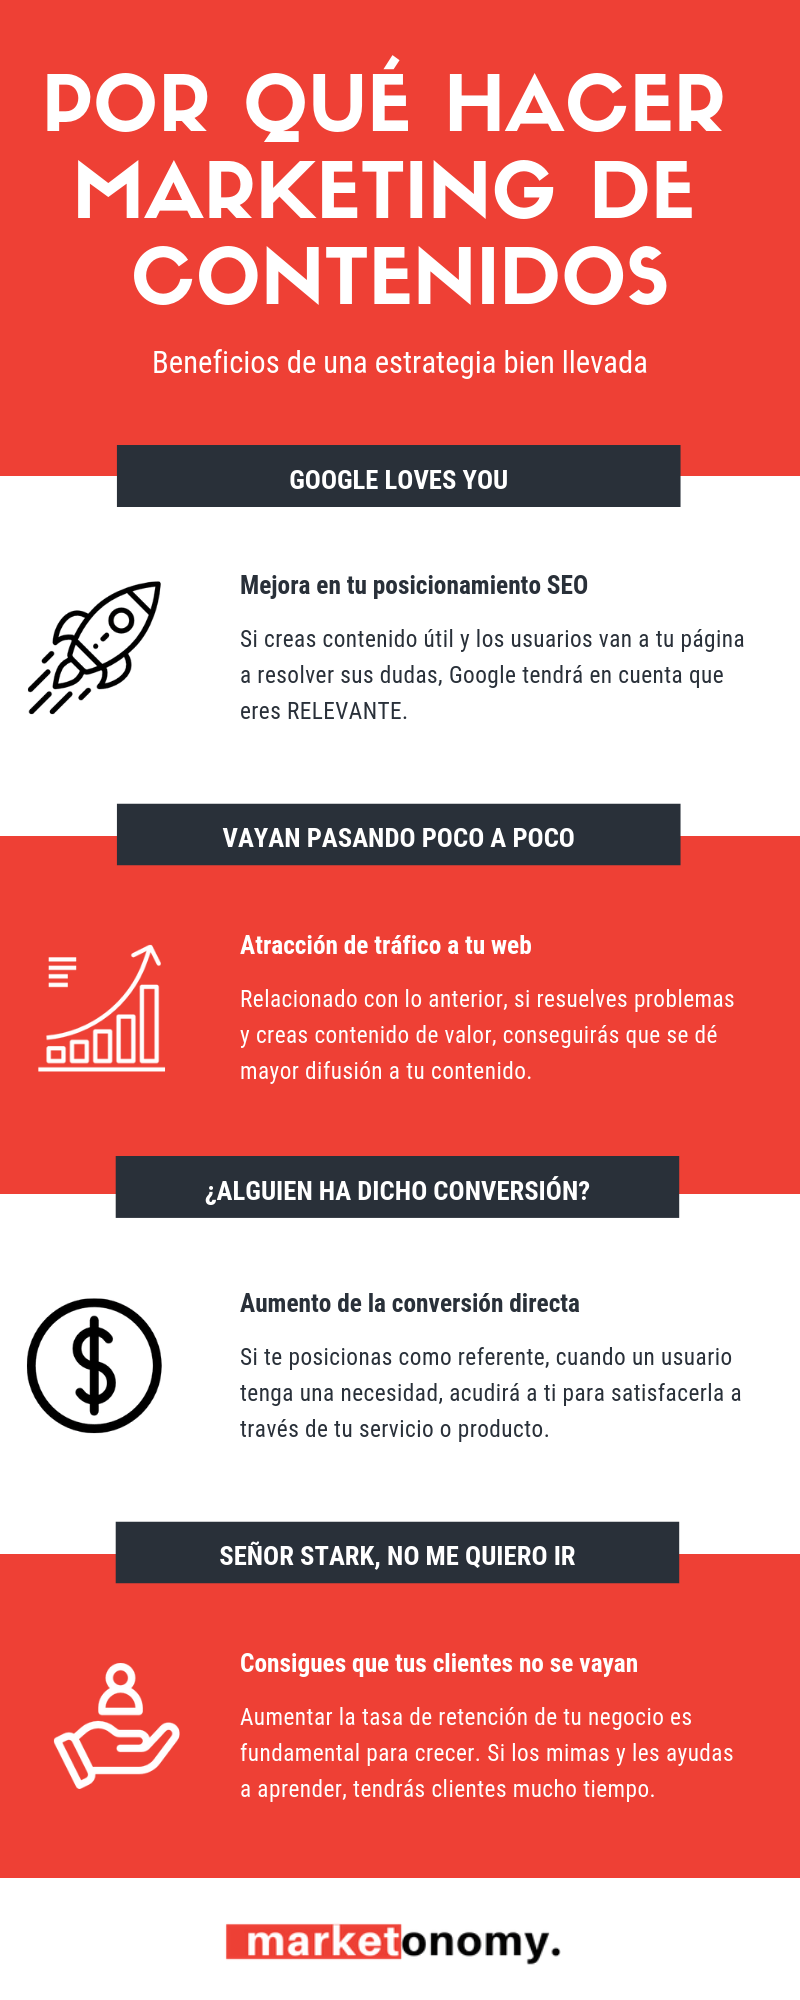 Por qué hacer Marketing de Contenidos #infografia #infographic #marketing